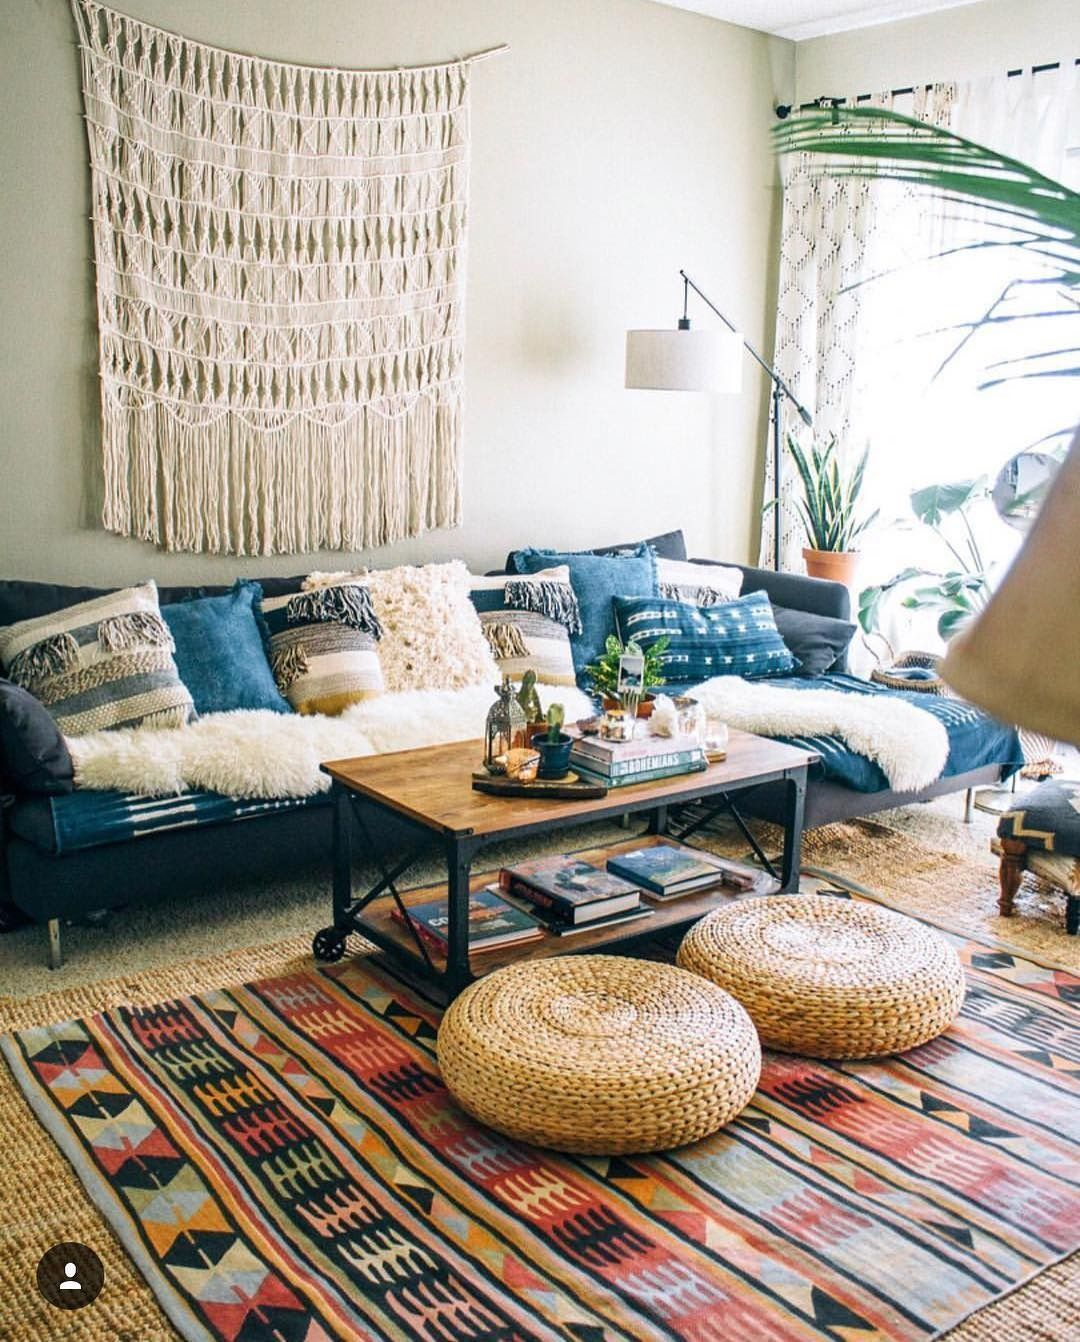 chic bohemian interior design you will want to try home sweet